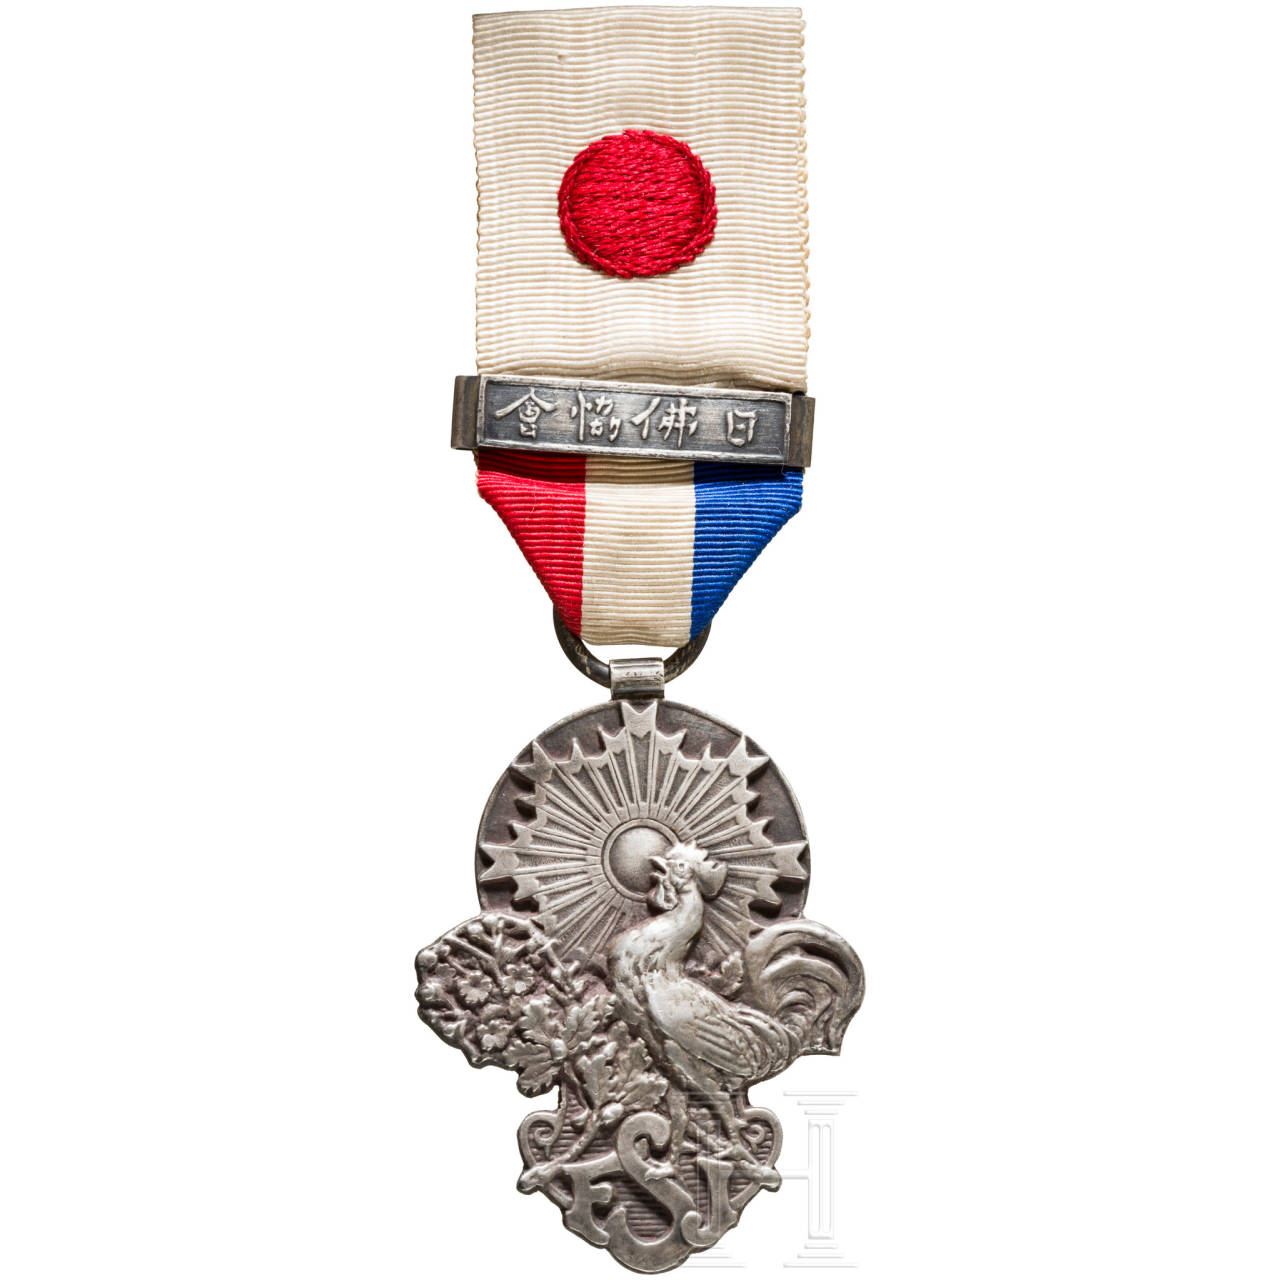 Medal of the French-Japanese Society, late 19th century